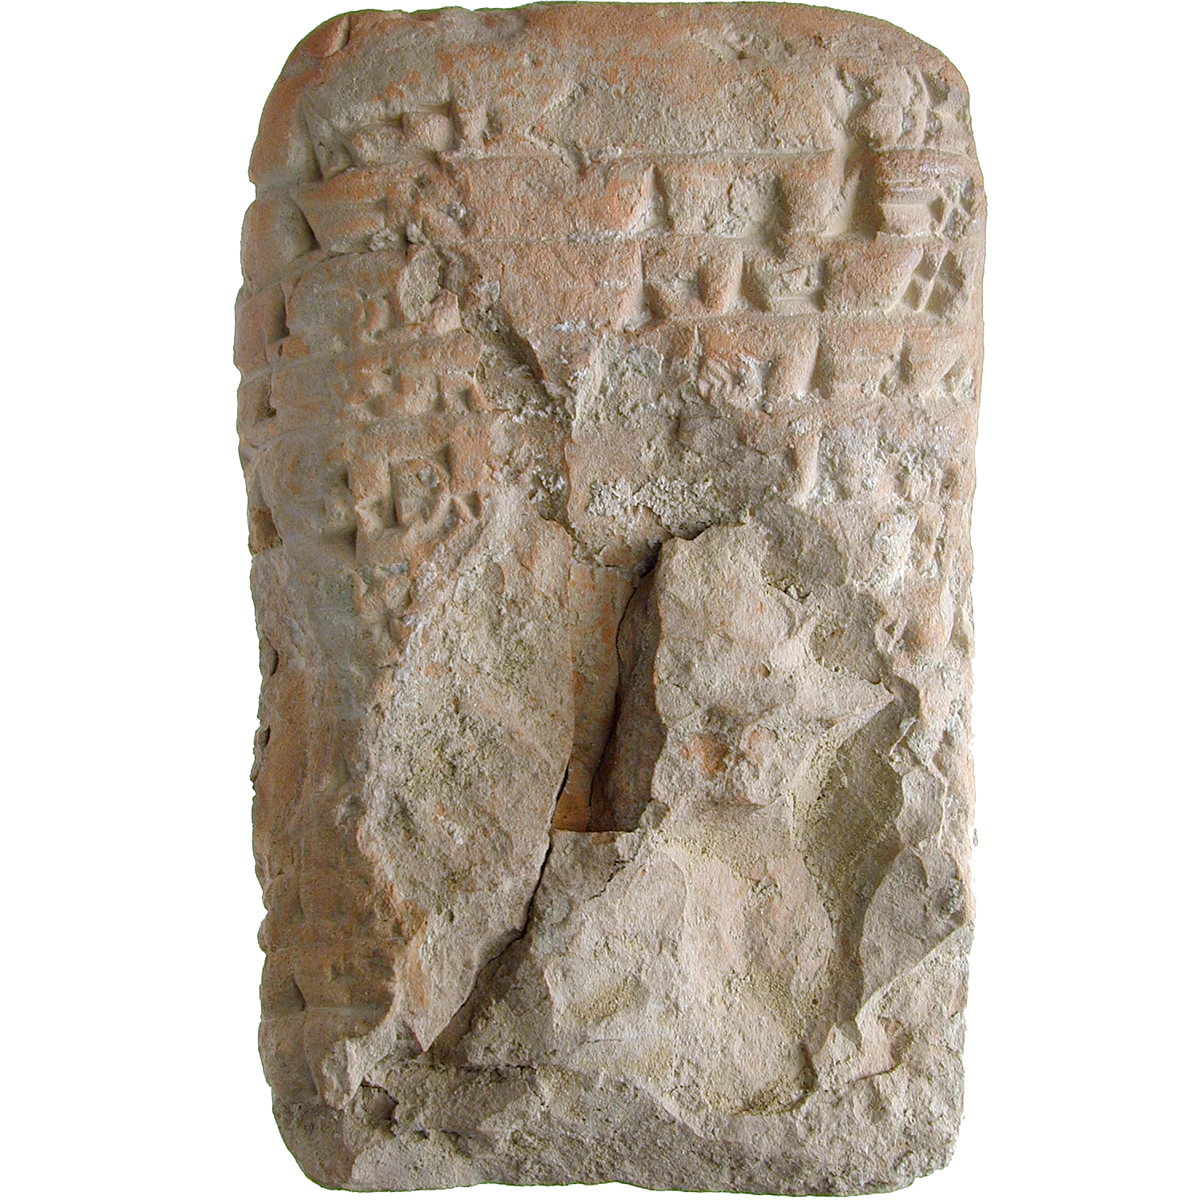 Mesopotamia, Old Akkadian Period, Clay Tablet with Cuneiform Writing (reverse)